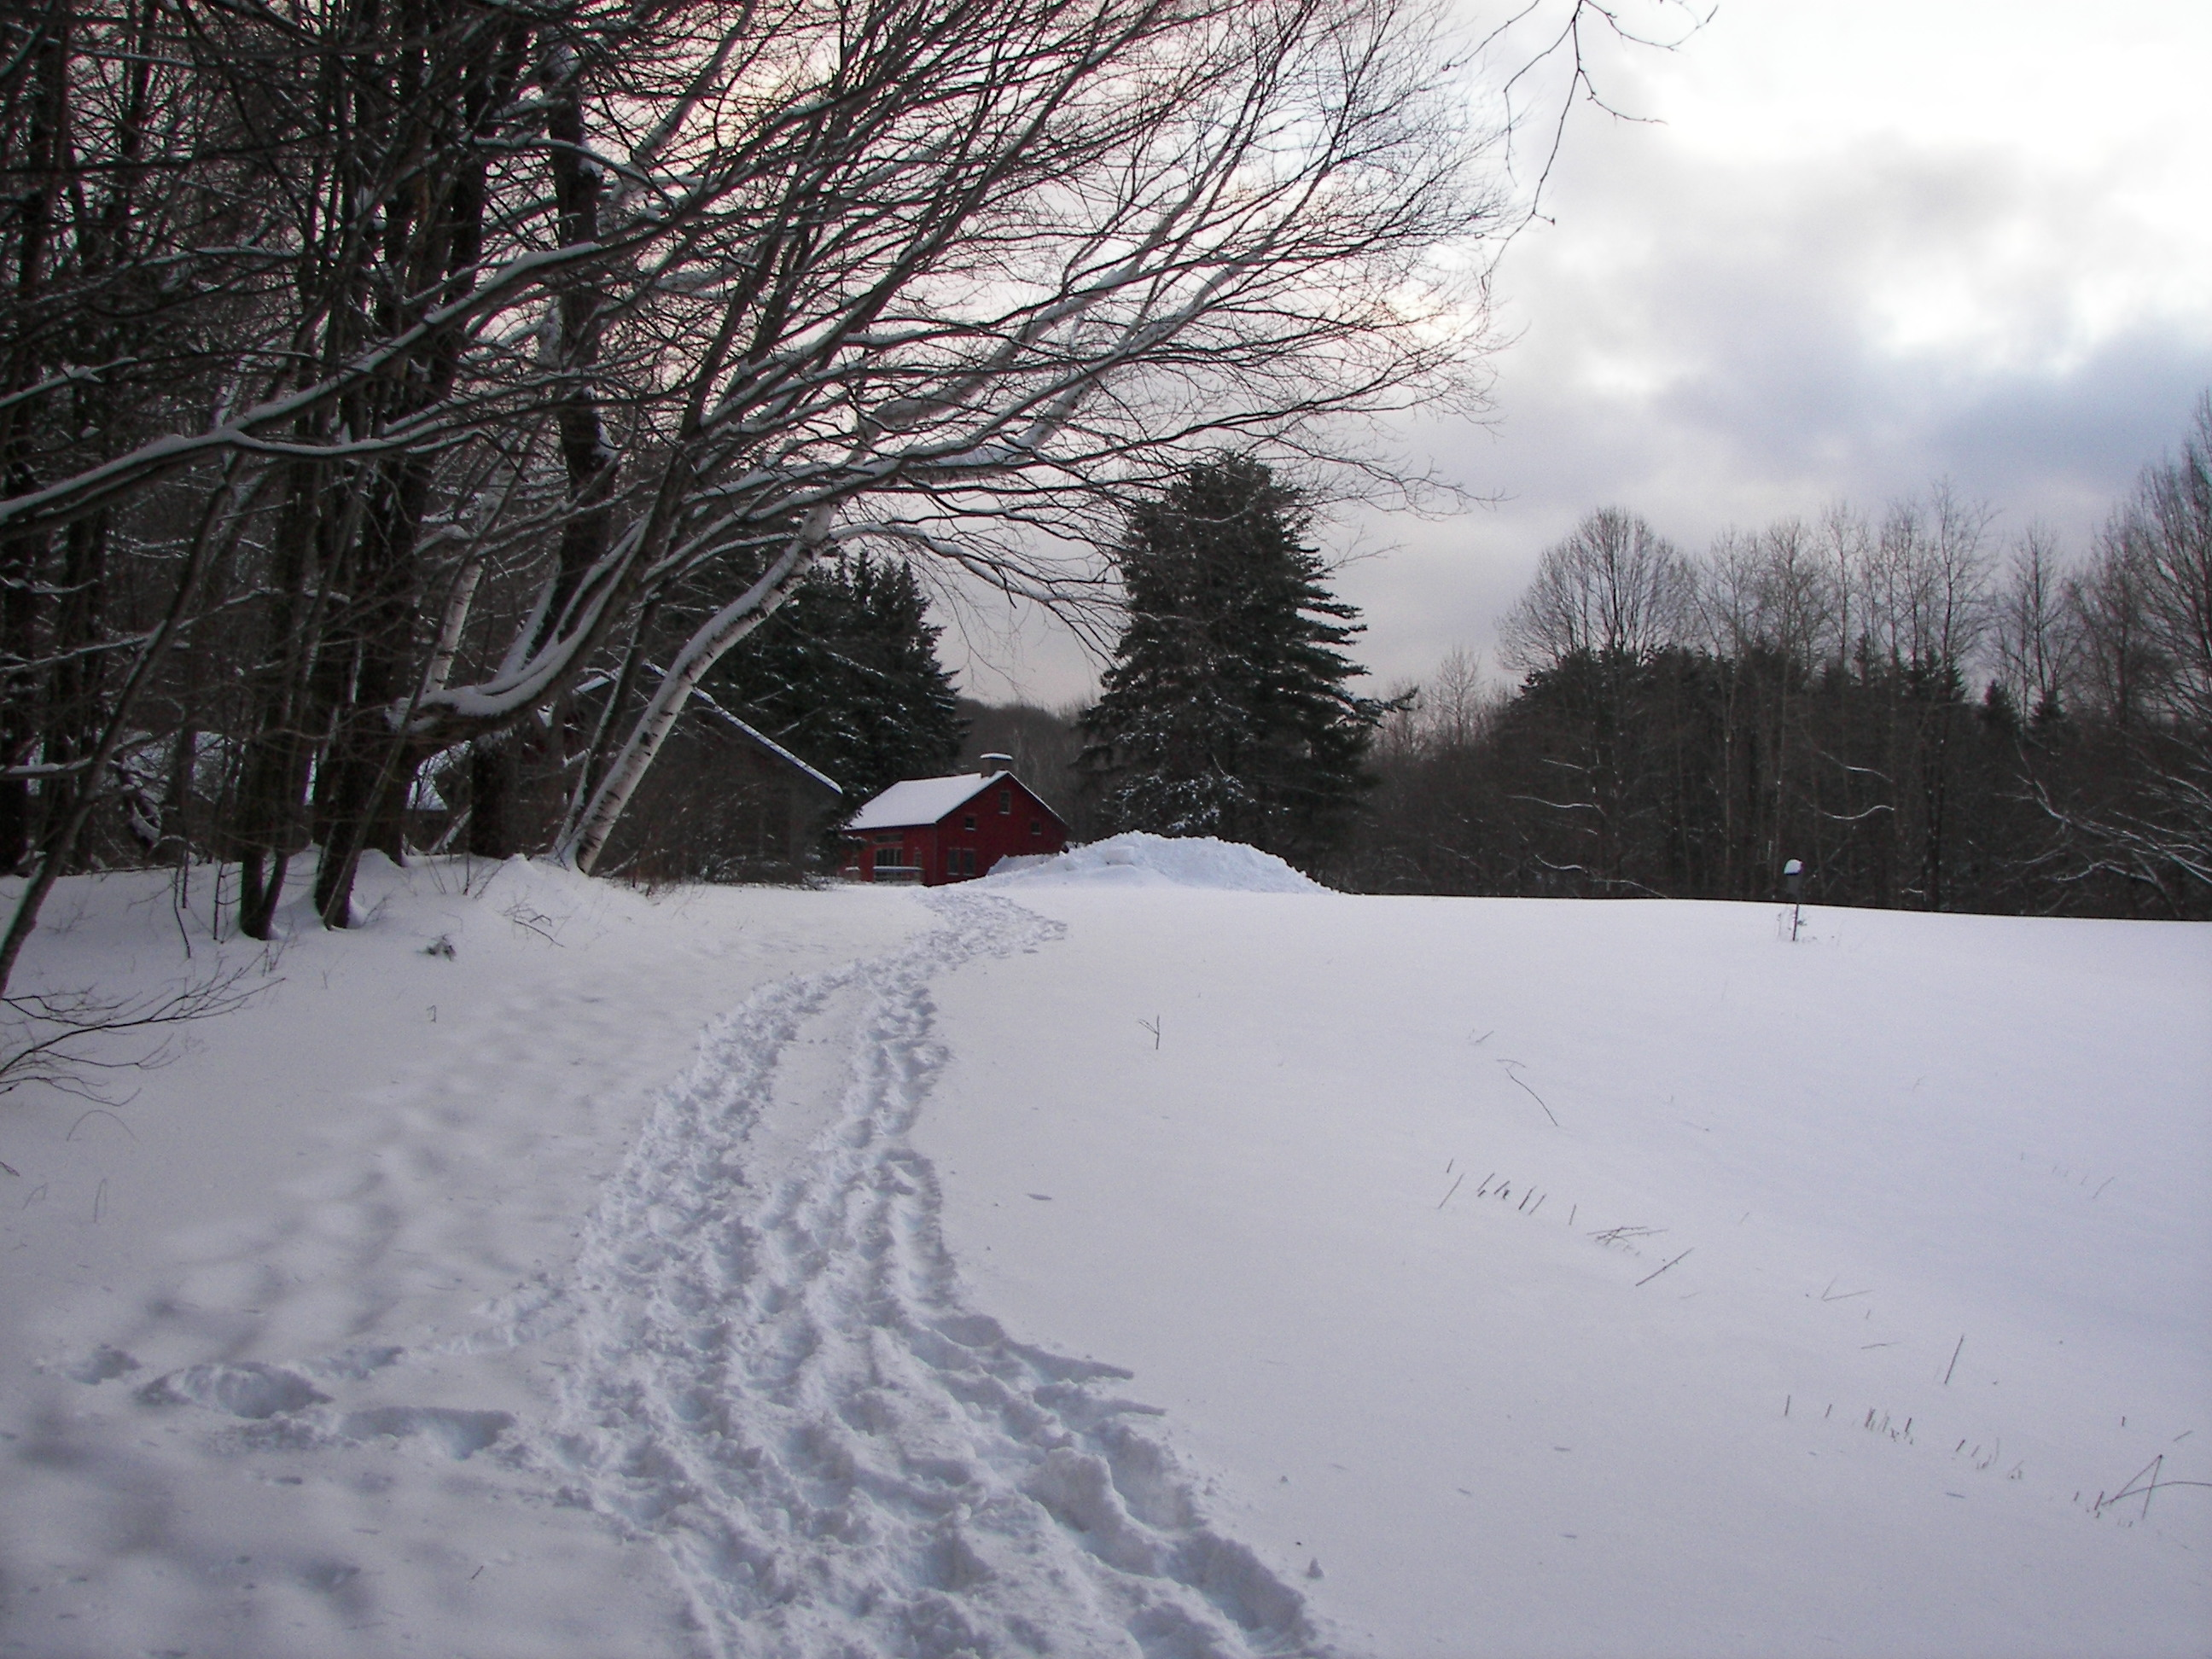 Pleasant Valley, 2010 Photo Contest Entry © Carol R. Balise